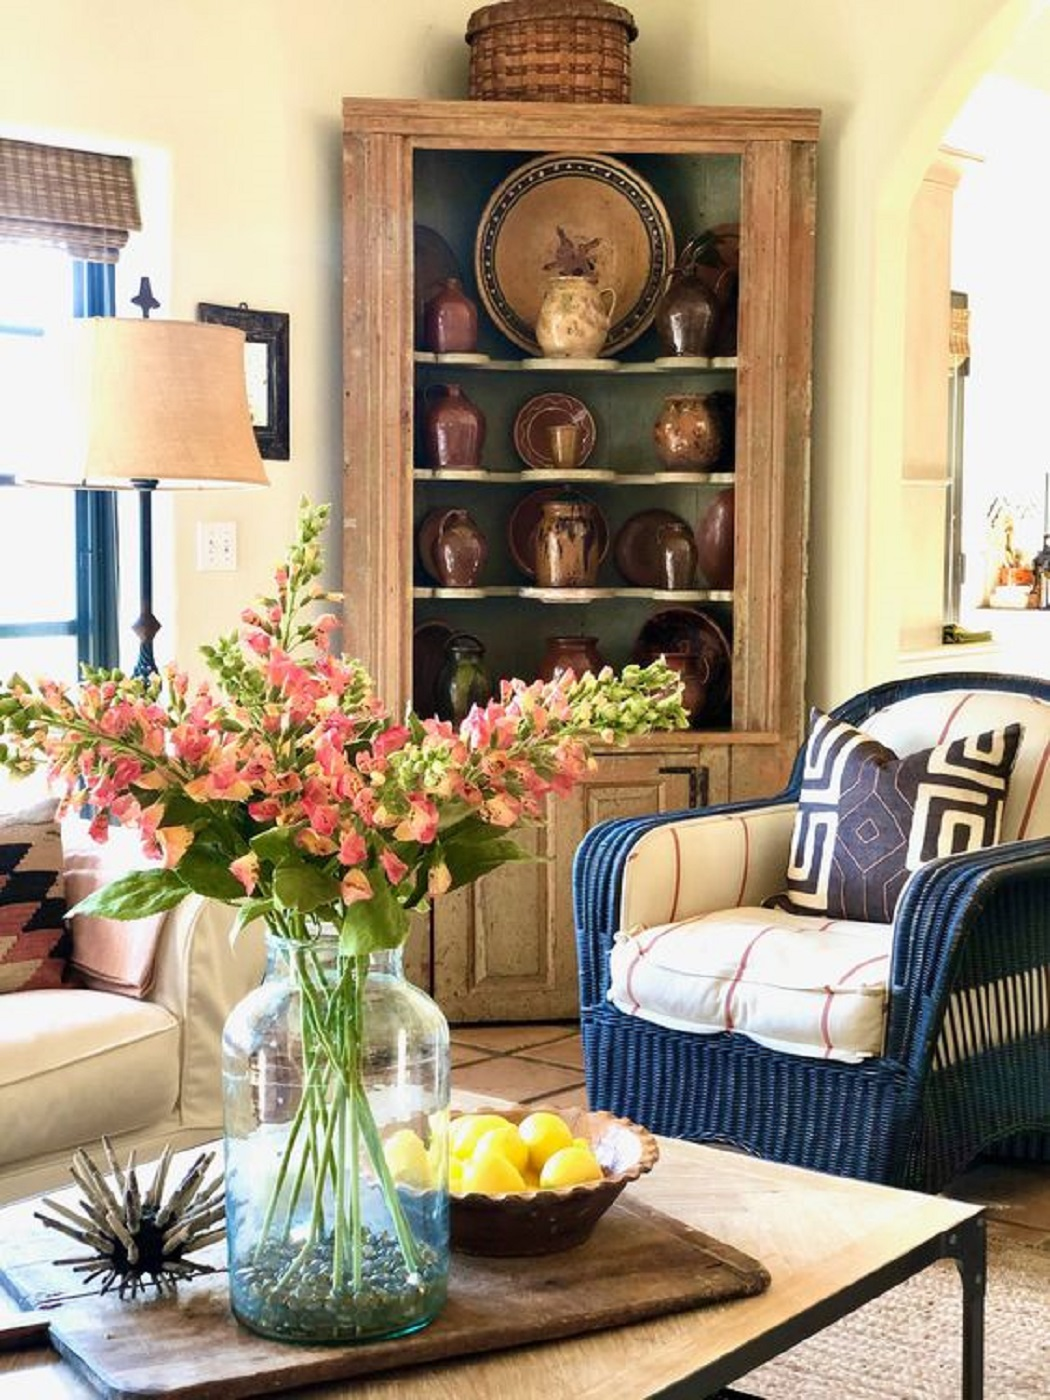 designer cindy hattersley's family room with antique corner cupboard